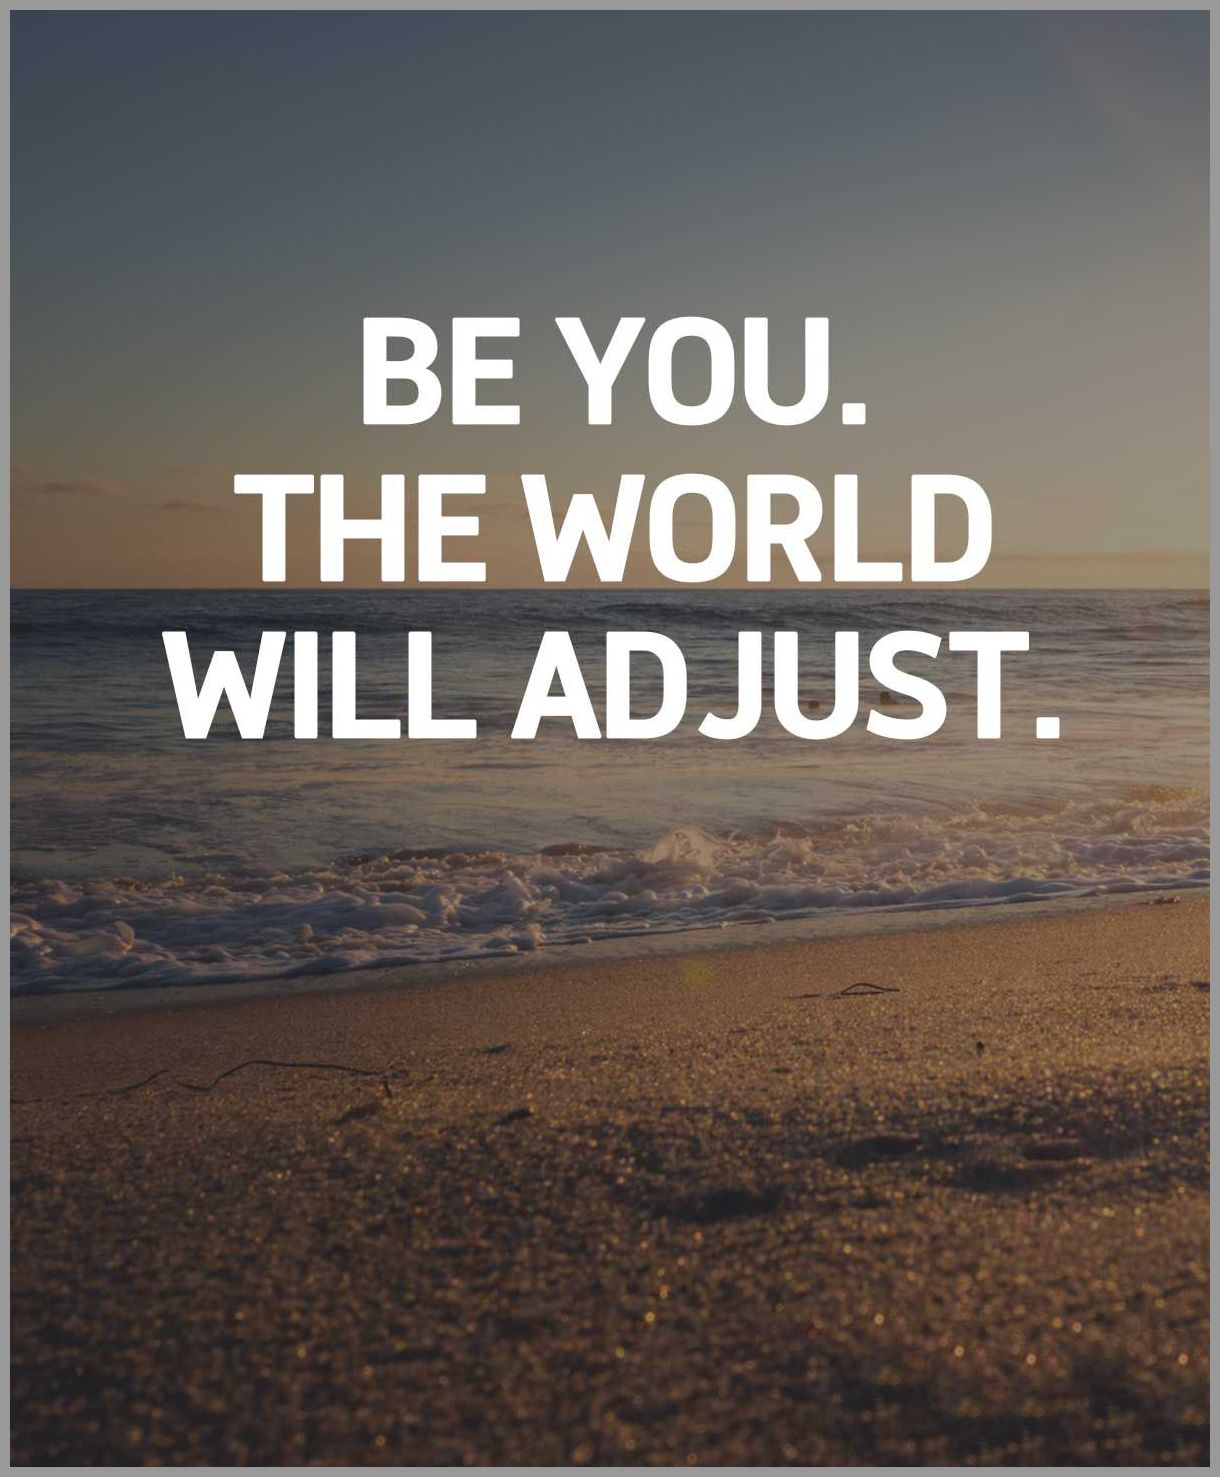 Be you the world will adjust - Be you the world will adjust